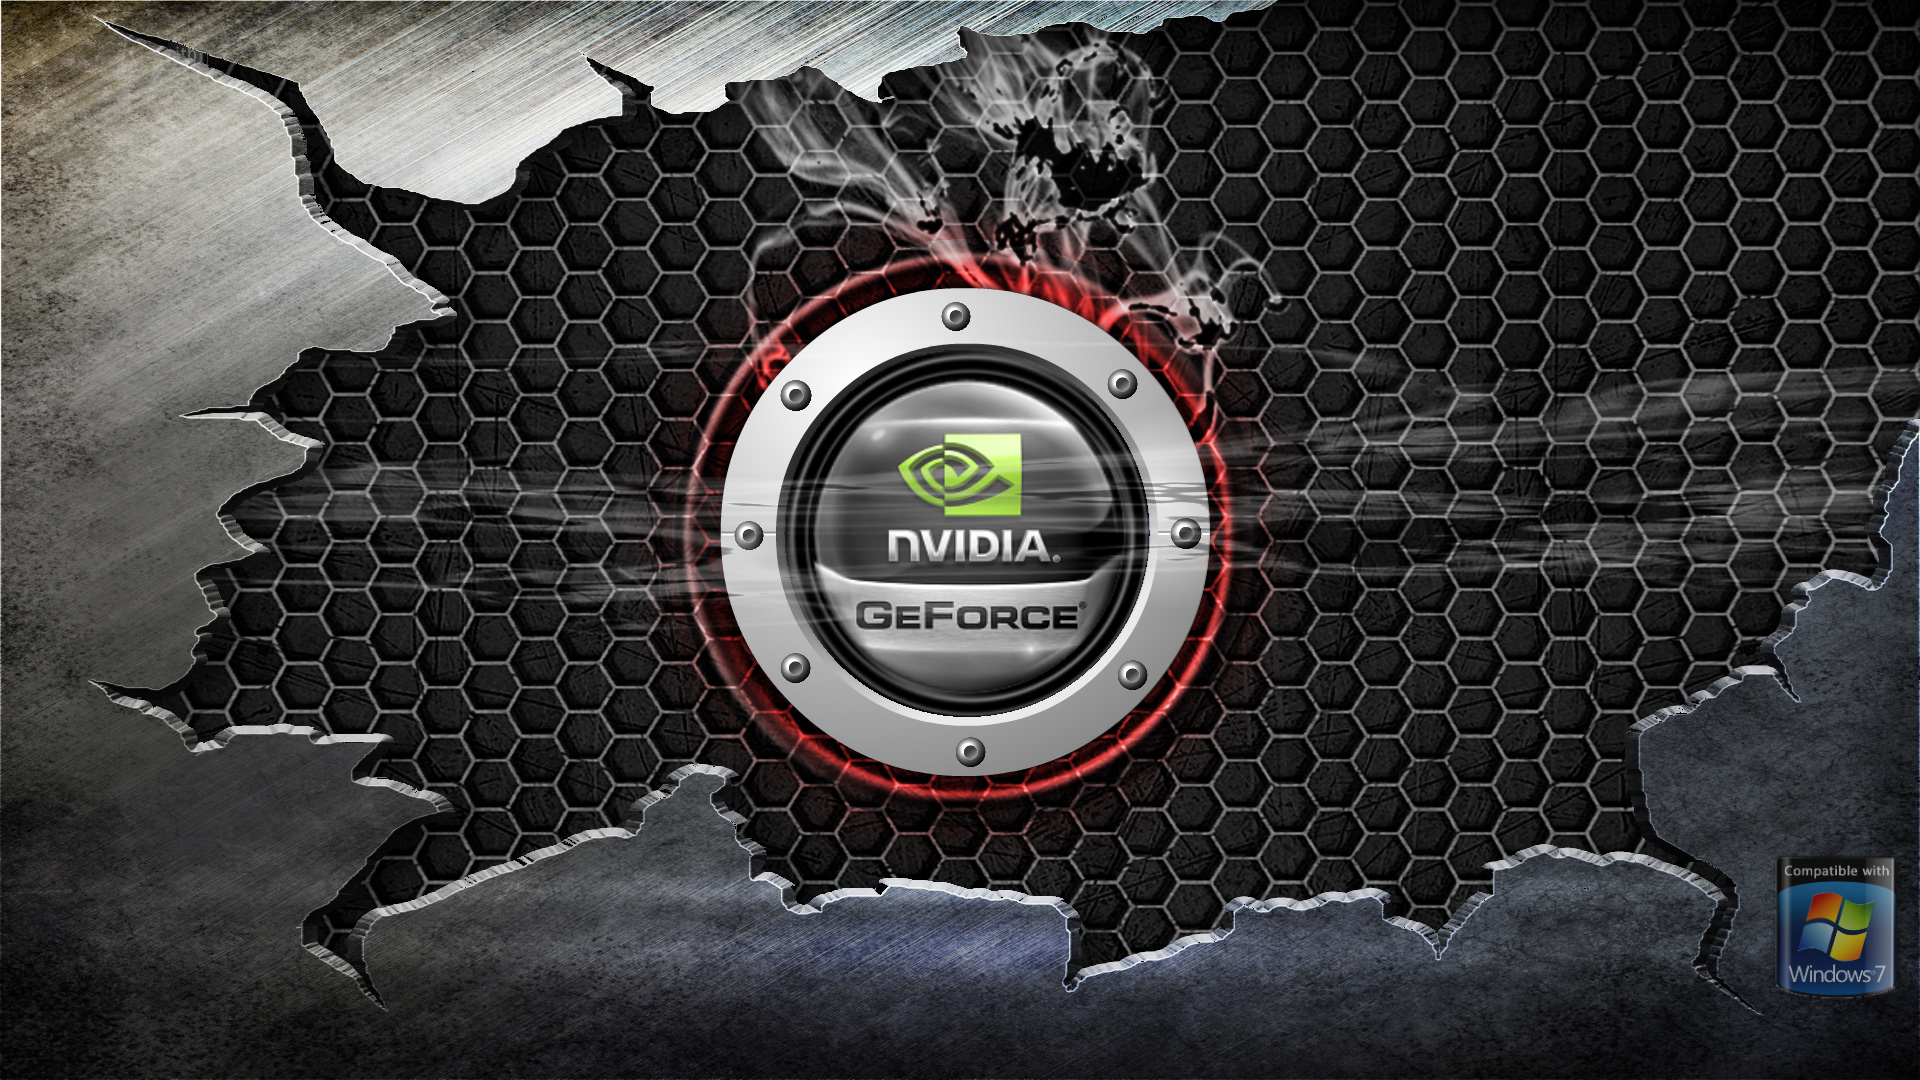 nvidia desktop wallpaper - sf wallpaper